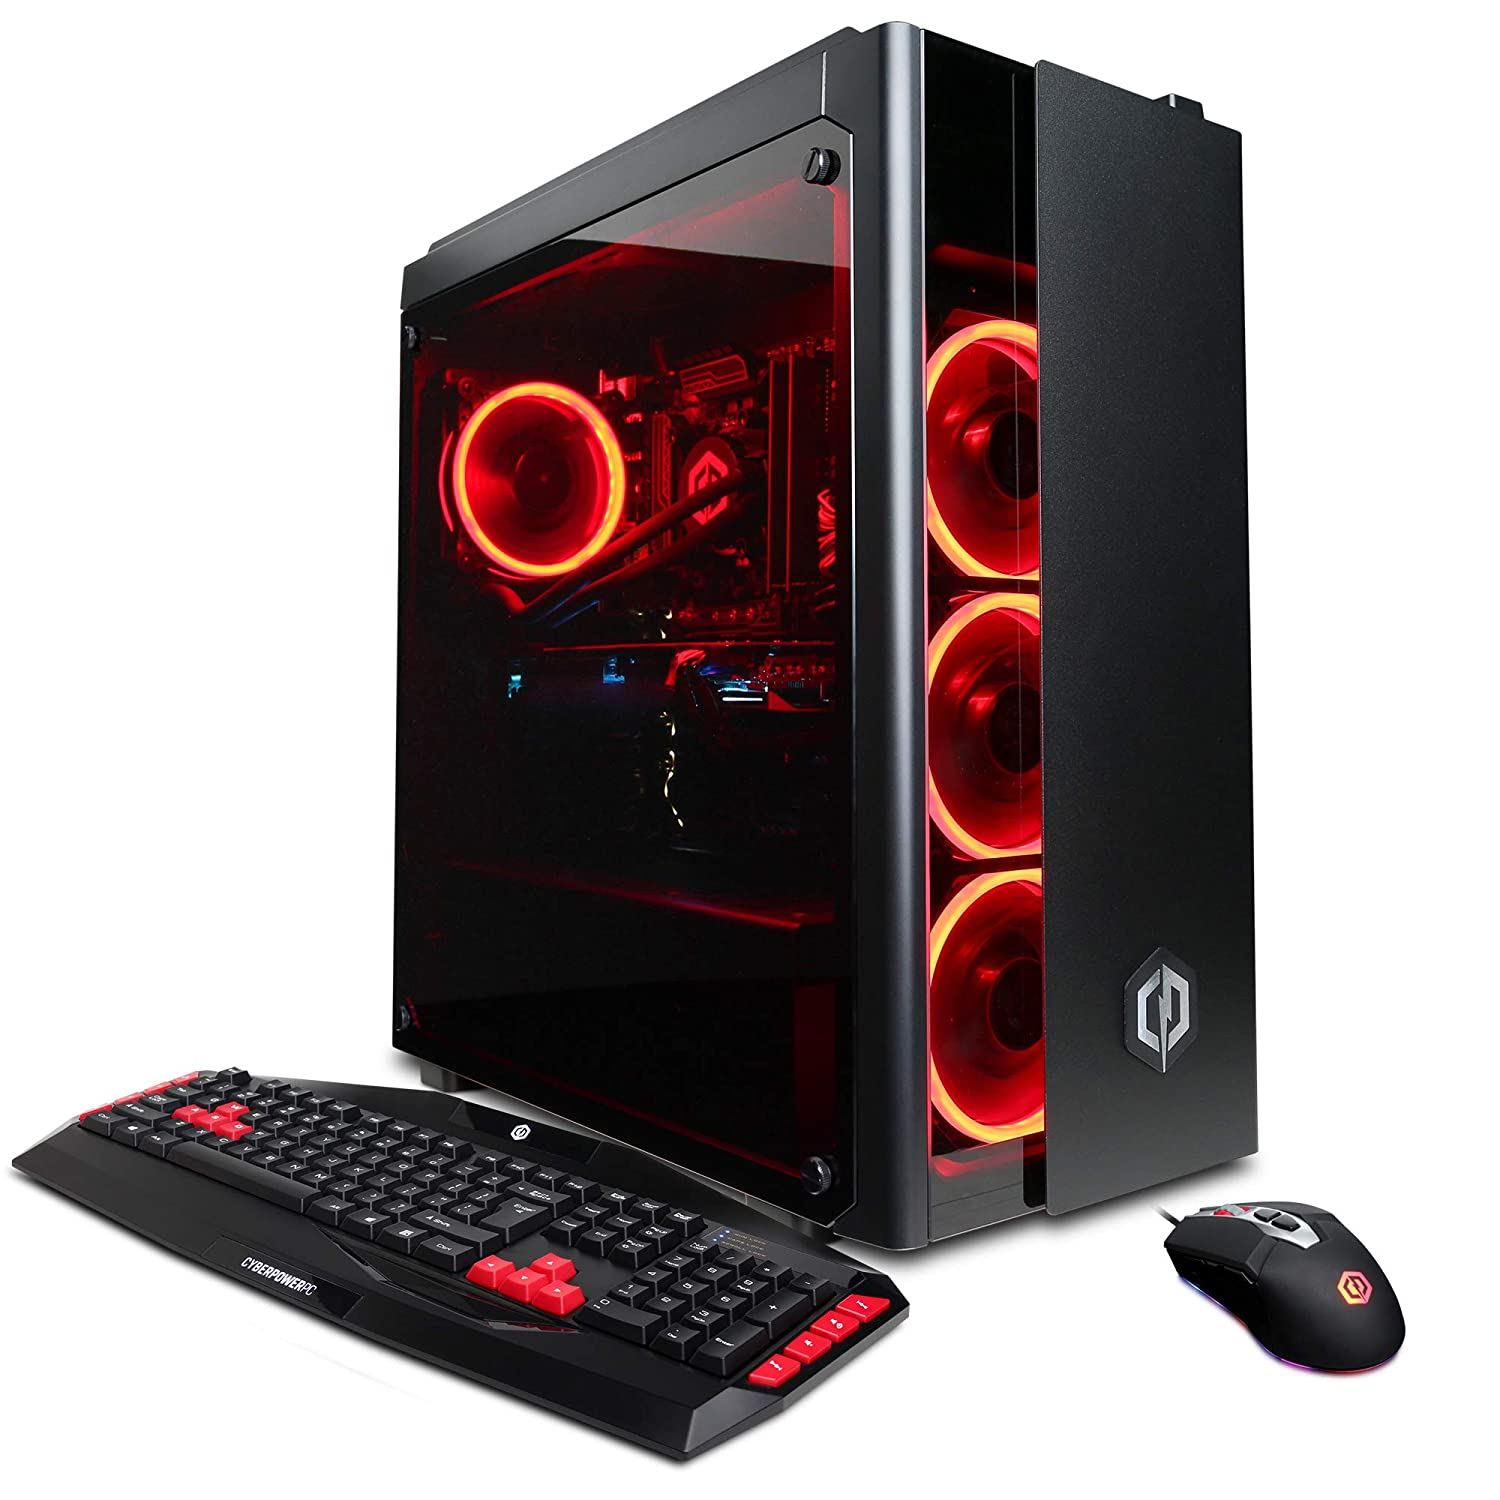 Fine Cyberpowerpc Gxivr8080A3 Overclockable Gaming Pc Desktop Liquid Cooled I7 8700K 3 7Ghz Z370 Motherboard 16Gb Ddr4 Nvidia Geforce Rtx 2080 8Gb Download Free Architecture Designs Salvmadebymaigaardcom